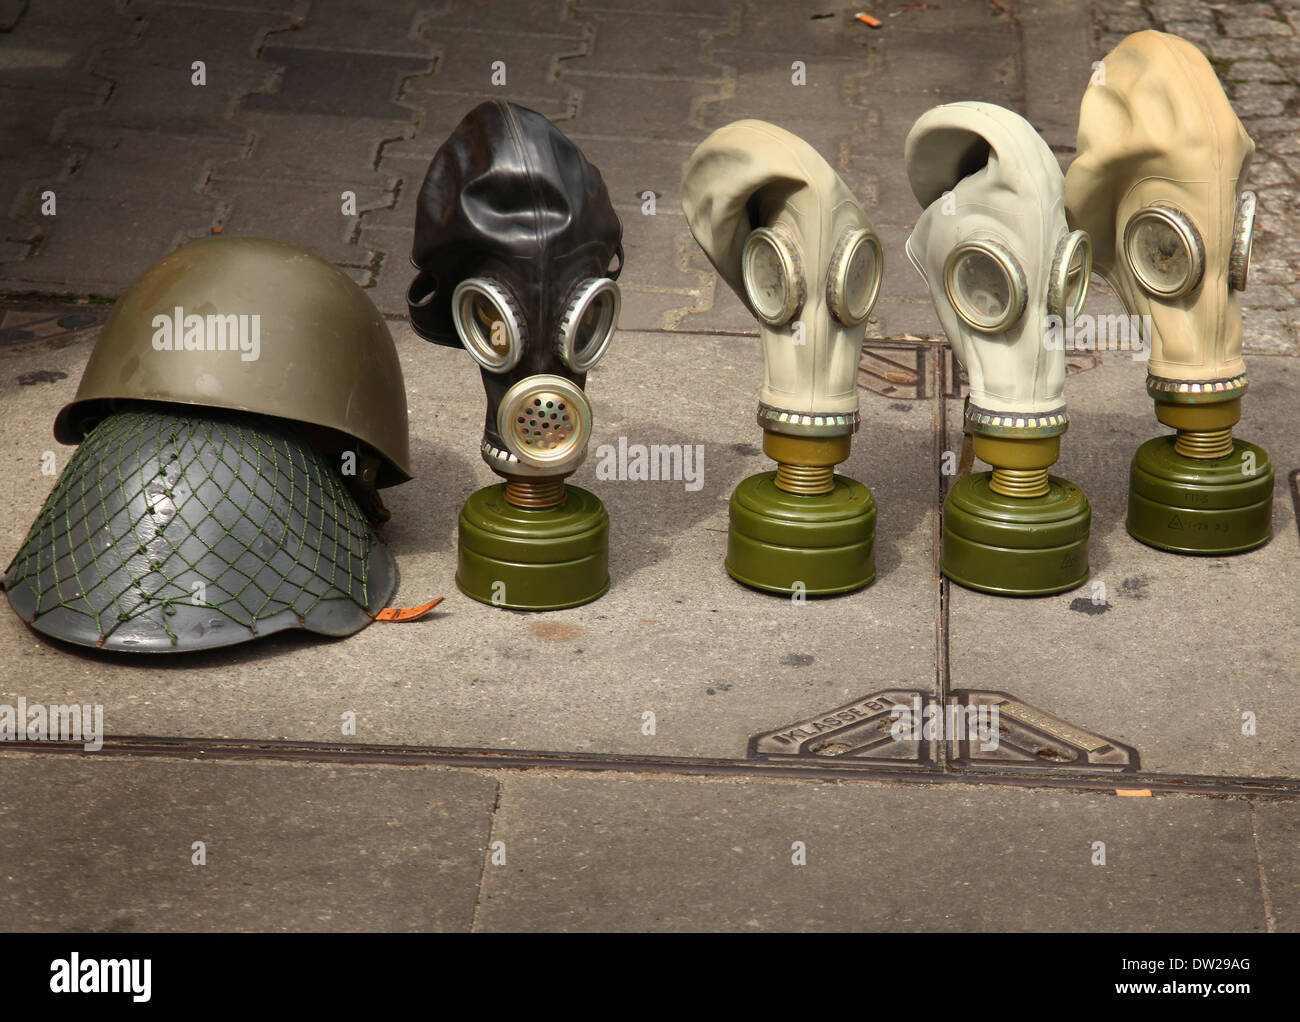 Gas masks and helmets are for sale as souvenirs at Checkpoint Charlie in Berlin, August 09, 2013. More and more Stock Photo